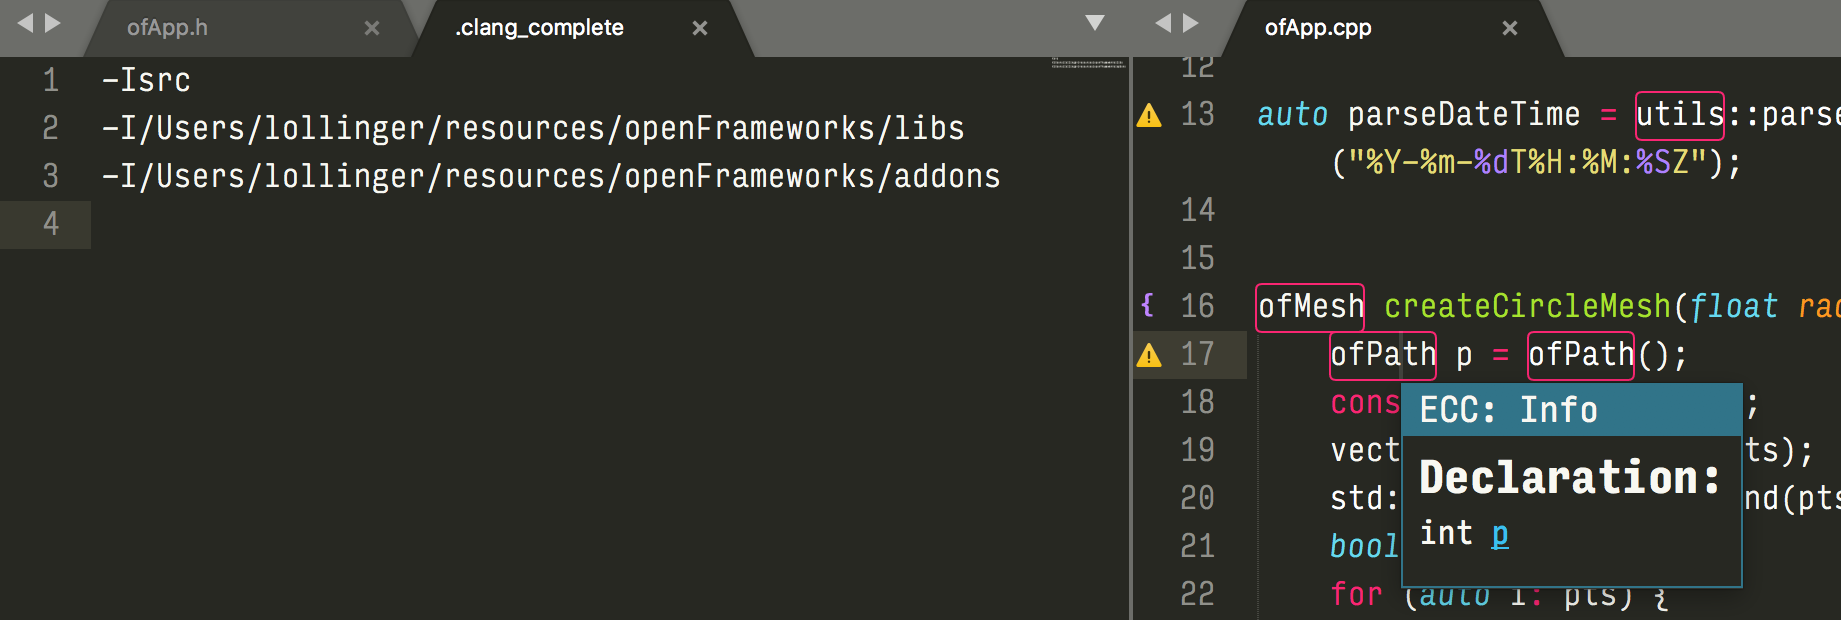 Sublime Text 3 and EasyClangAutocomplete - advanced - openFrameworks